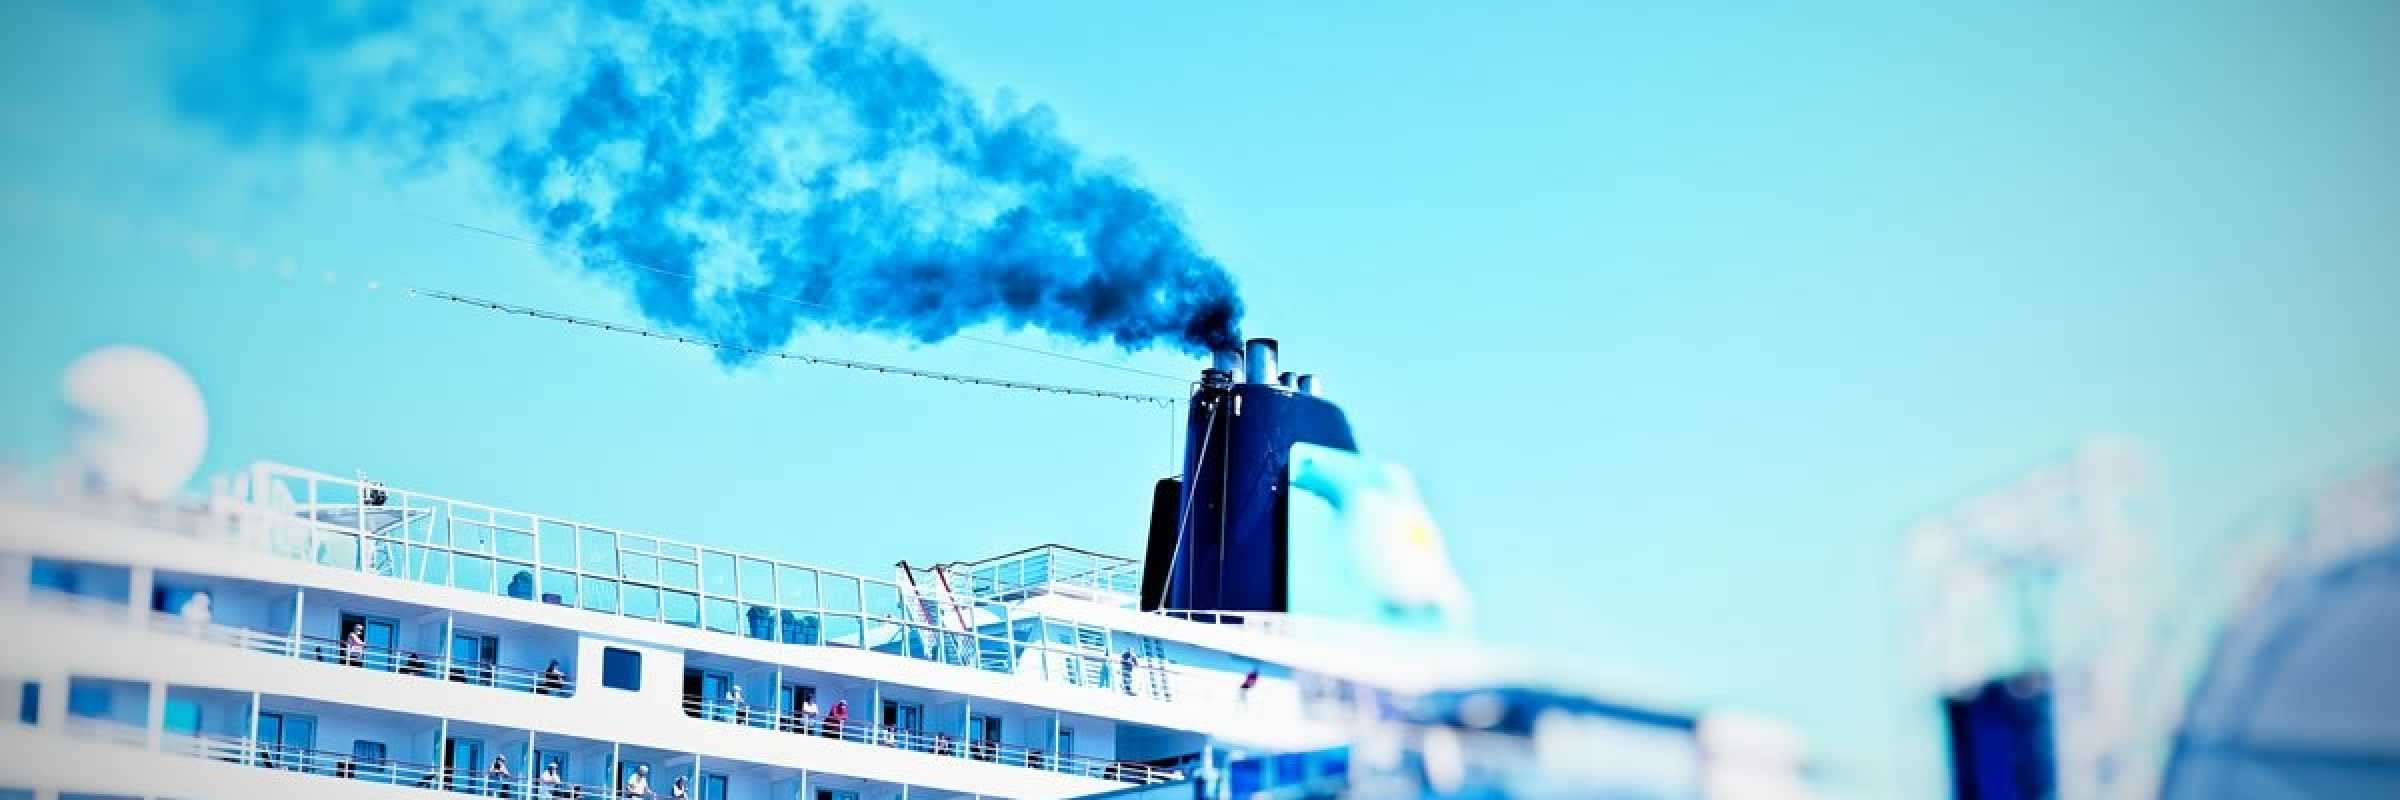 New shipowners' group to promote scrubbers for 2020 compliance